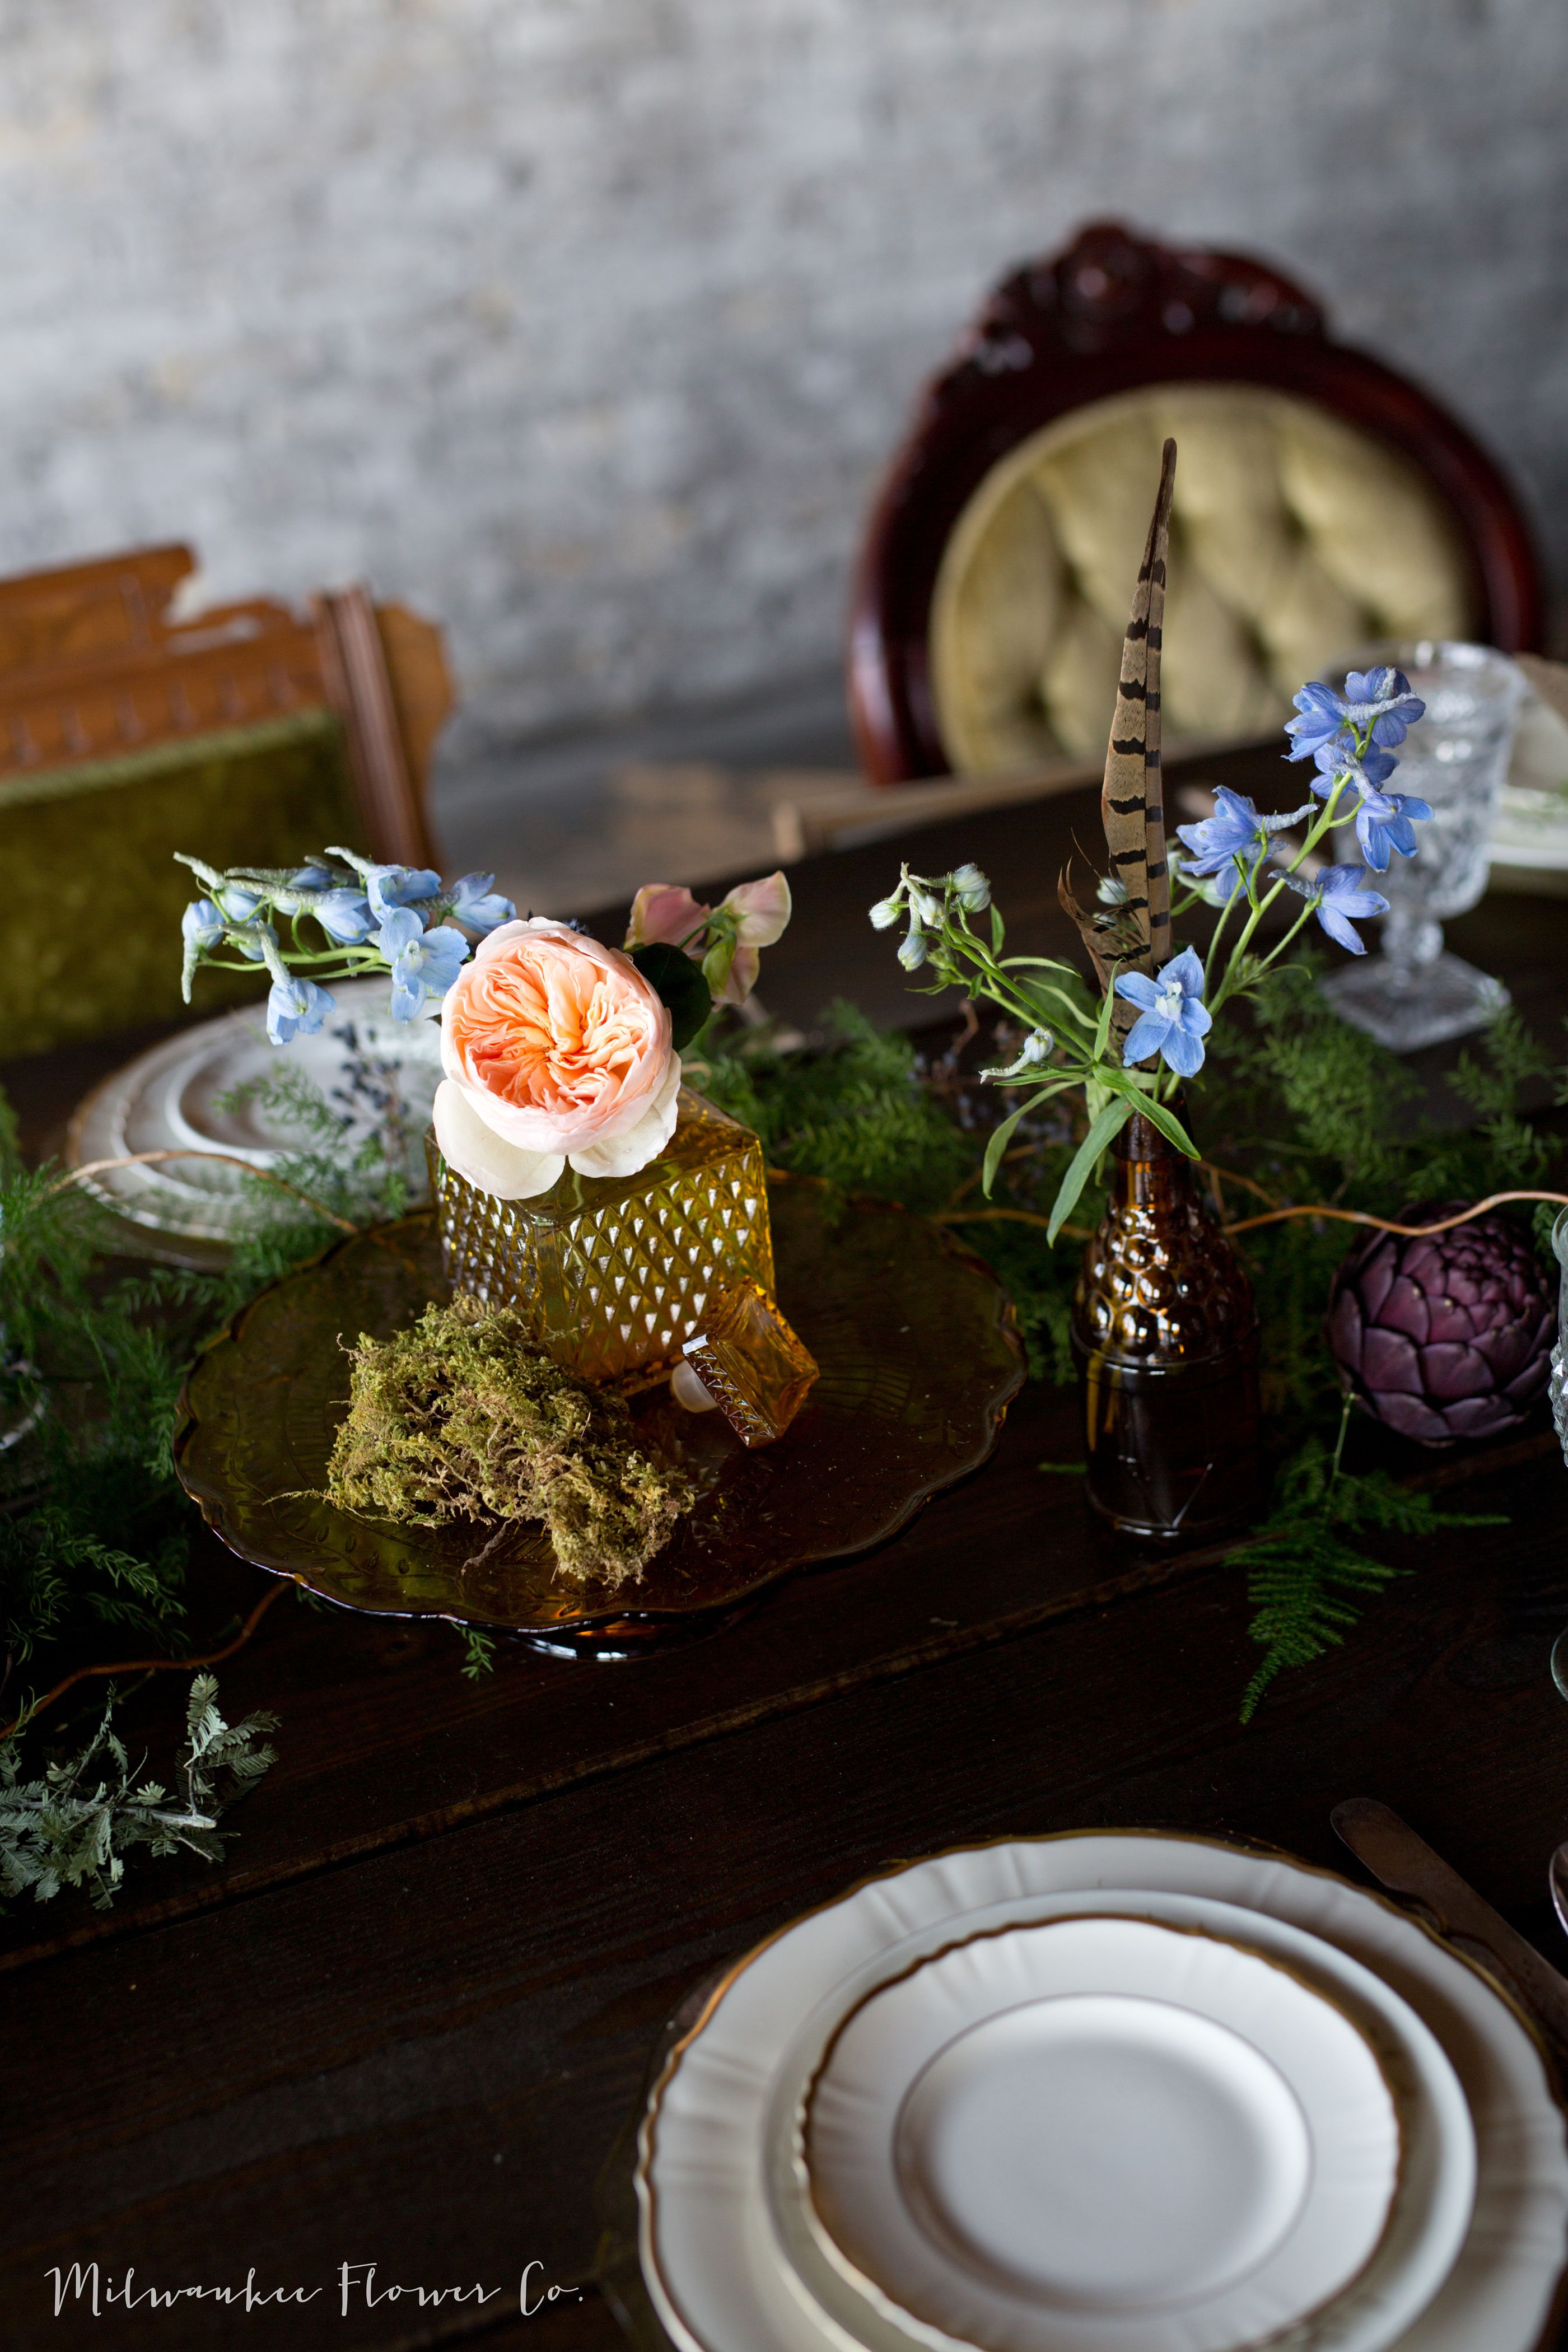 Designed + Styled by Milwaukee Flower Co. centerpiece